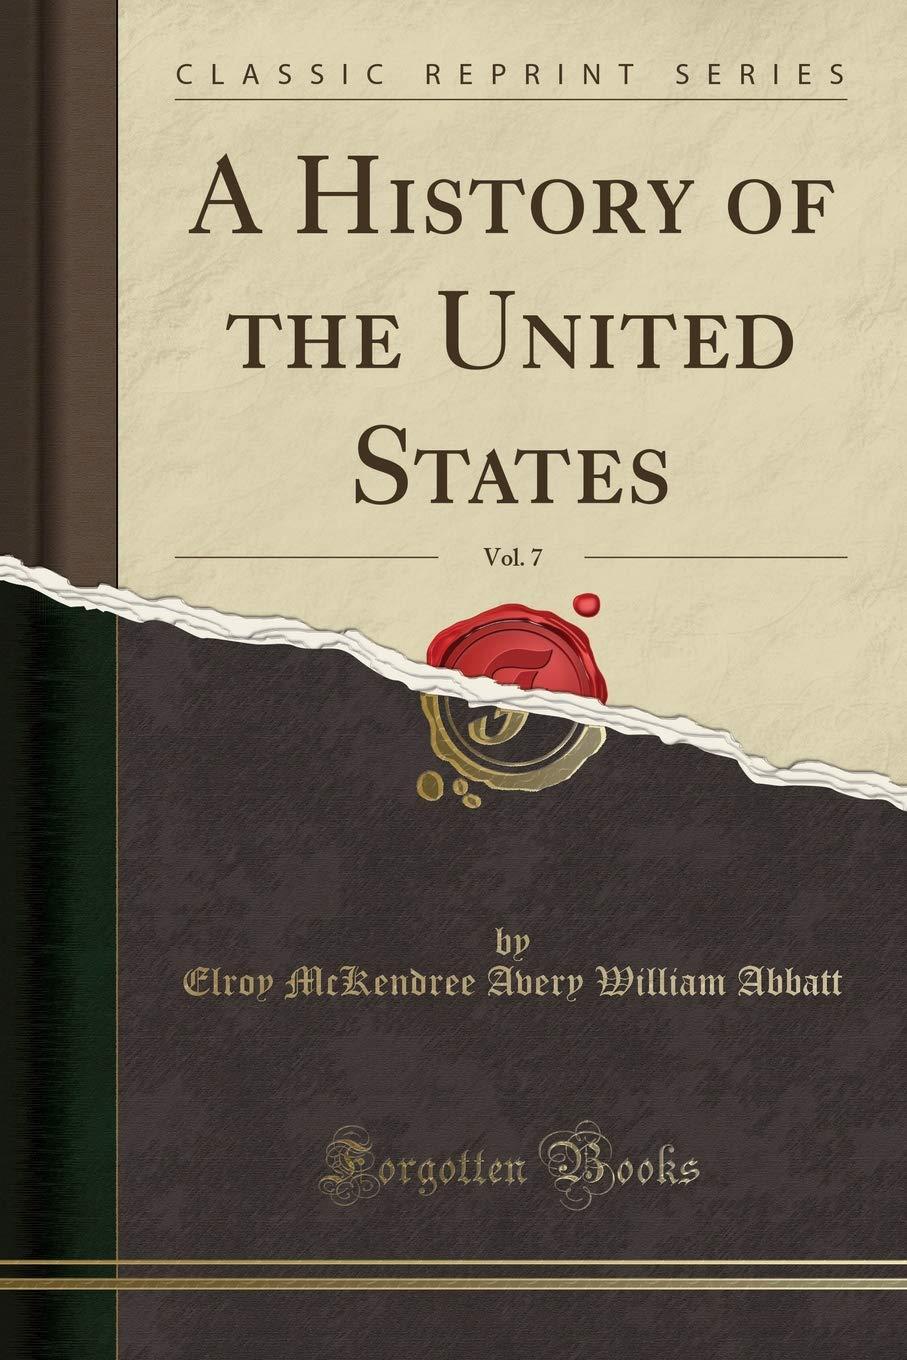 A History of the United States, Vol. 7 (Classic Reprint) PDF